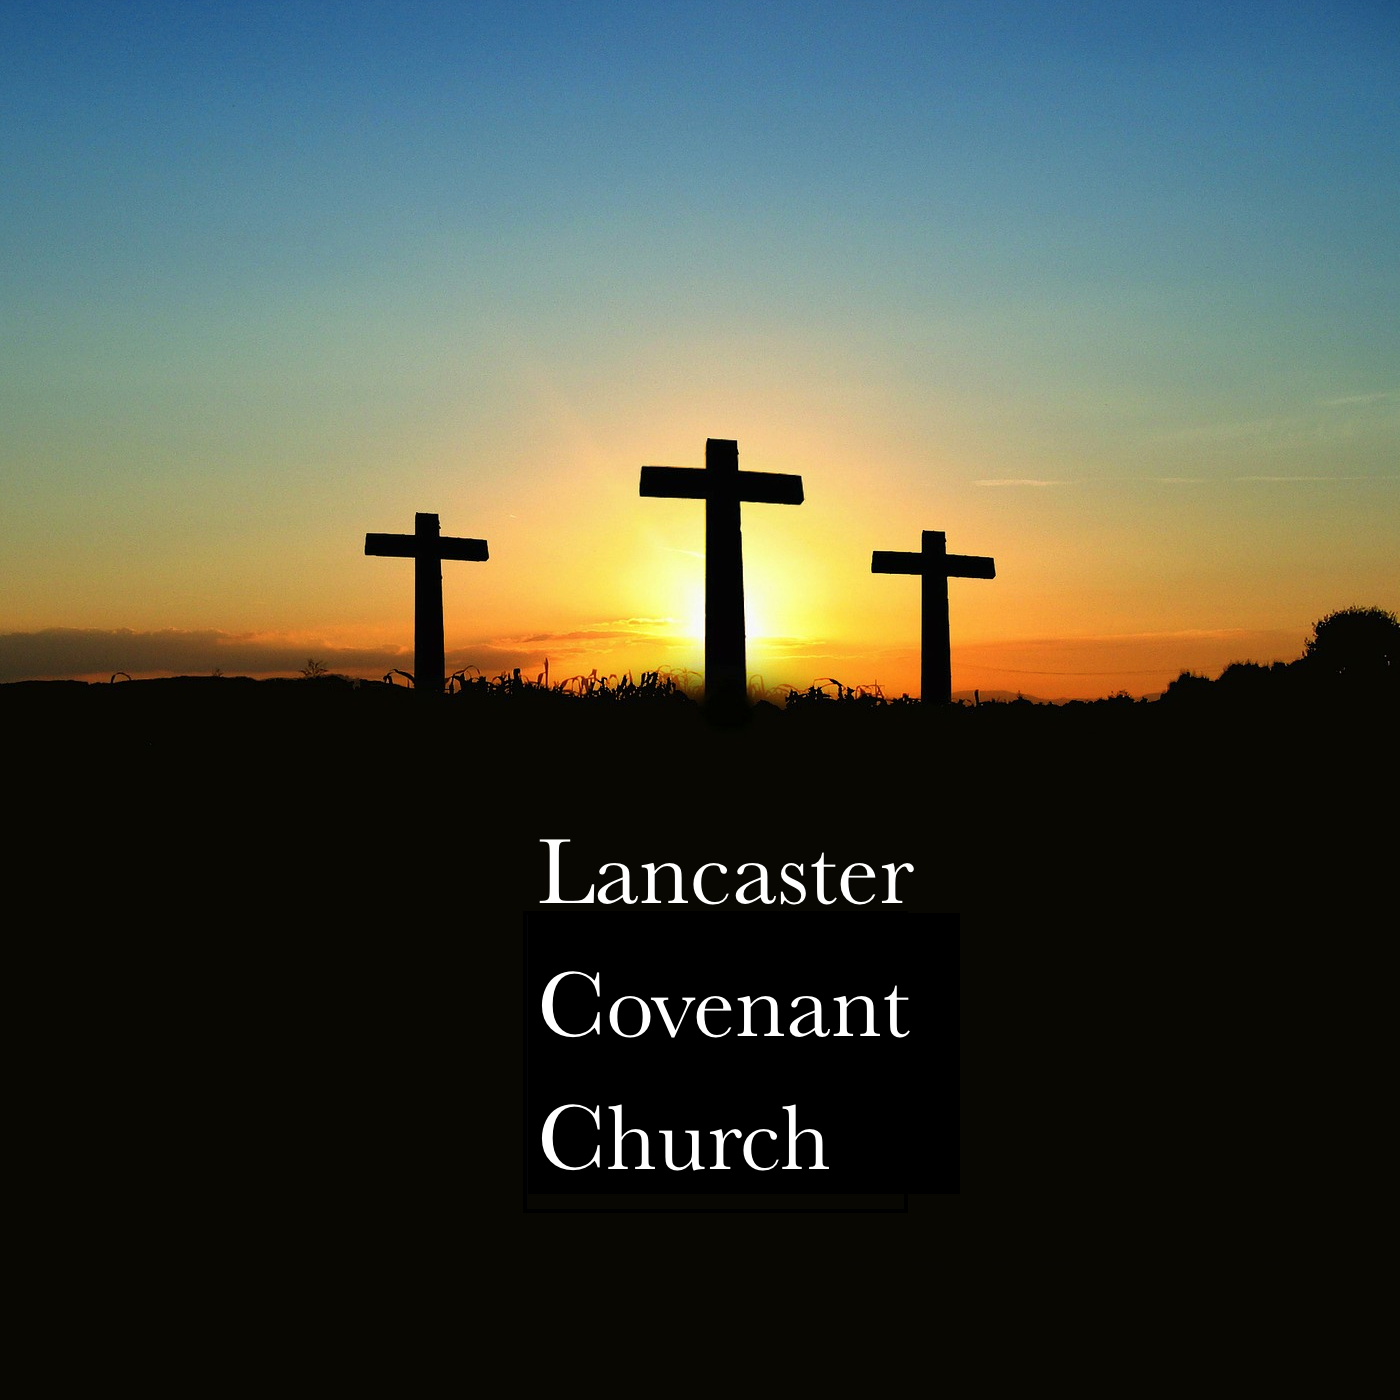 Lancaster Covenant Church